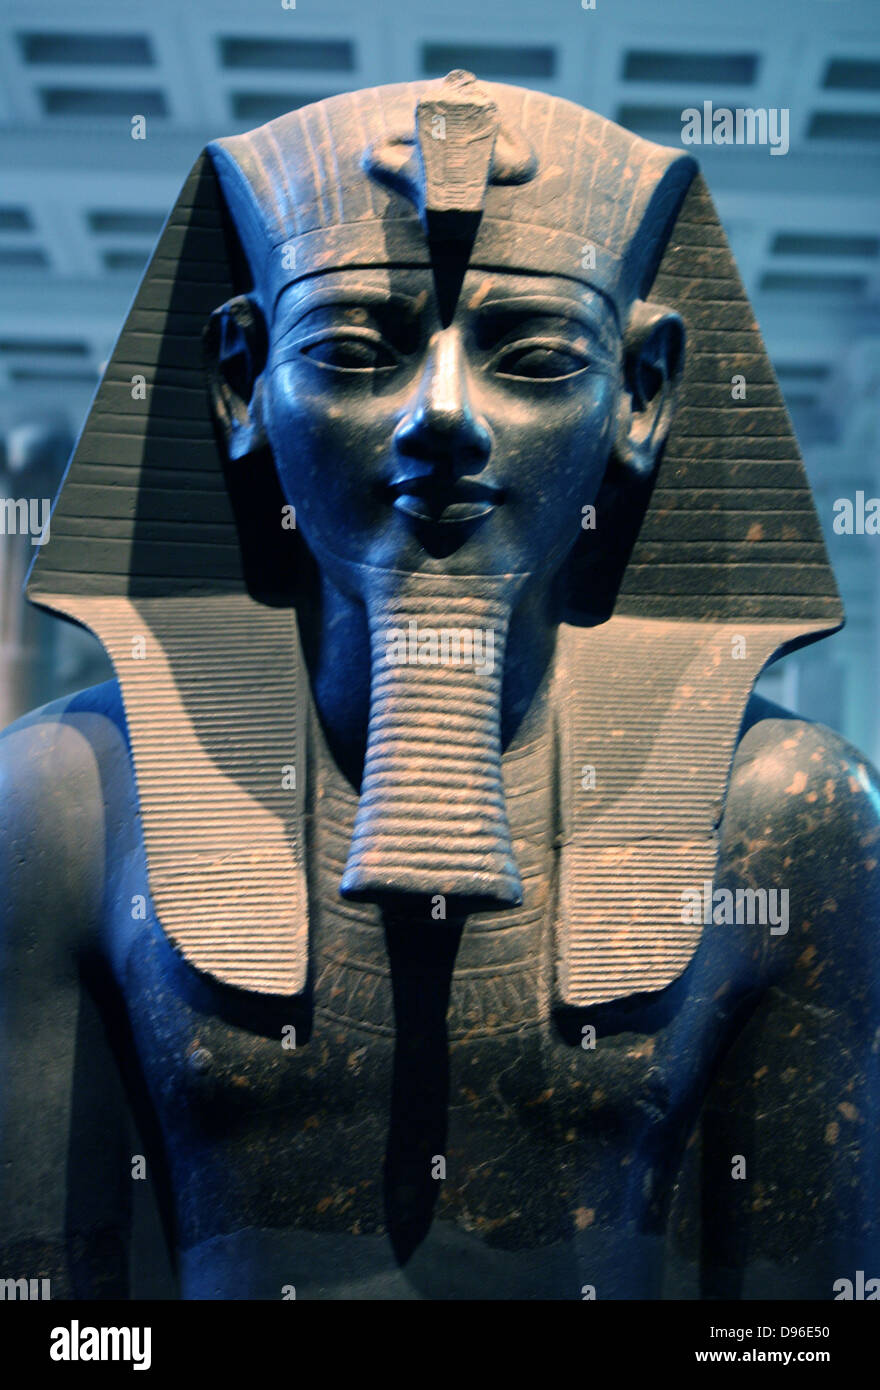 Statue of king Amenhotep III. 18th Dynasty, about 1400 BC from Thebes The king is represented in classic pose and - Stock Image